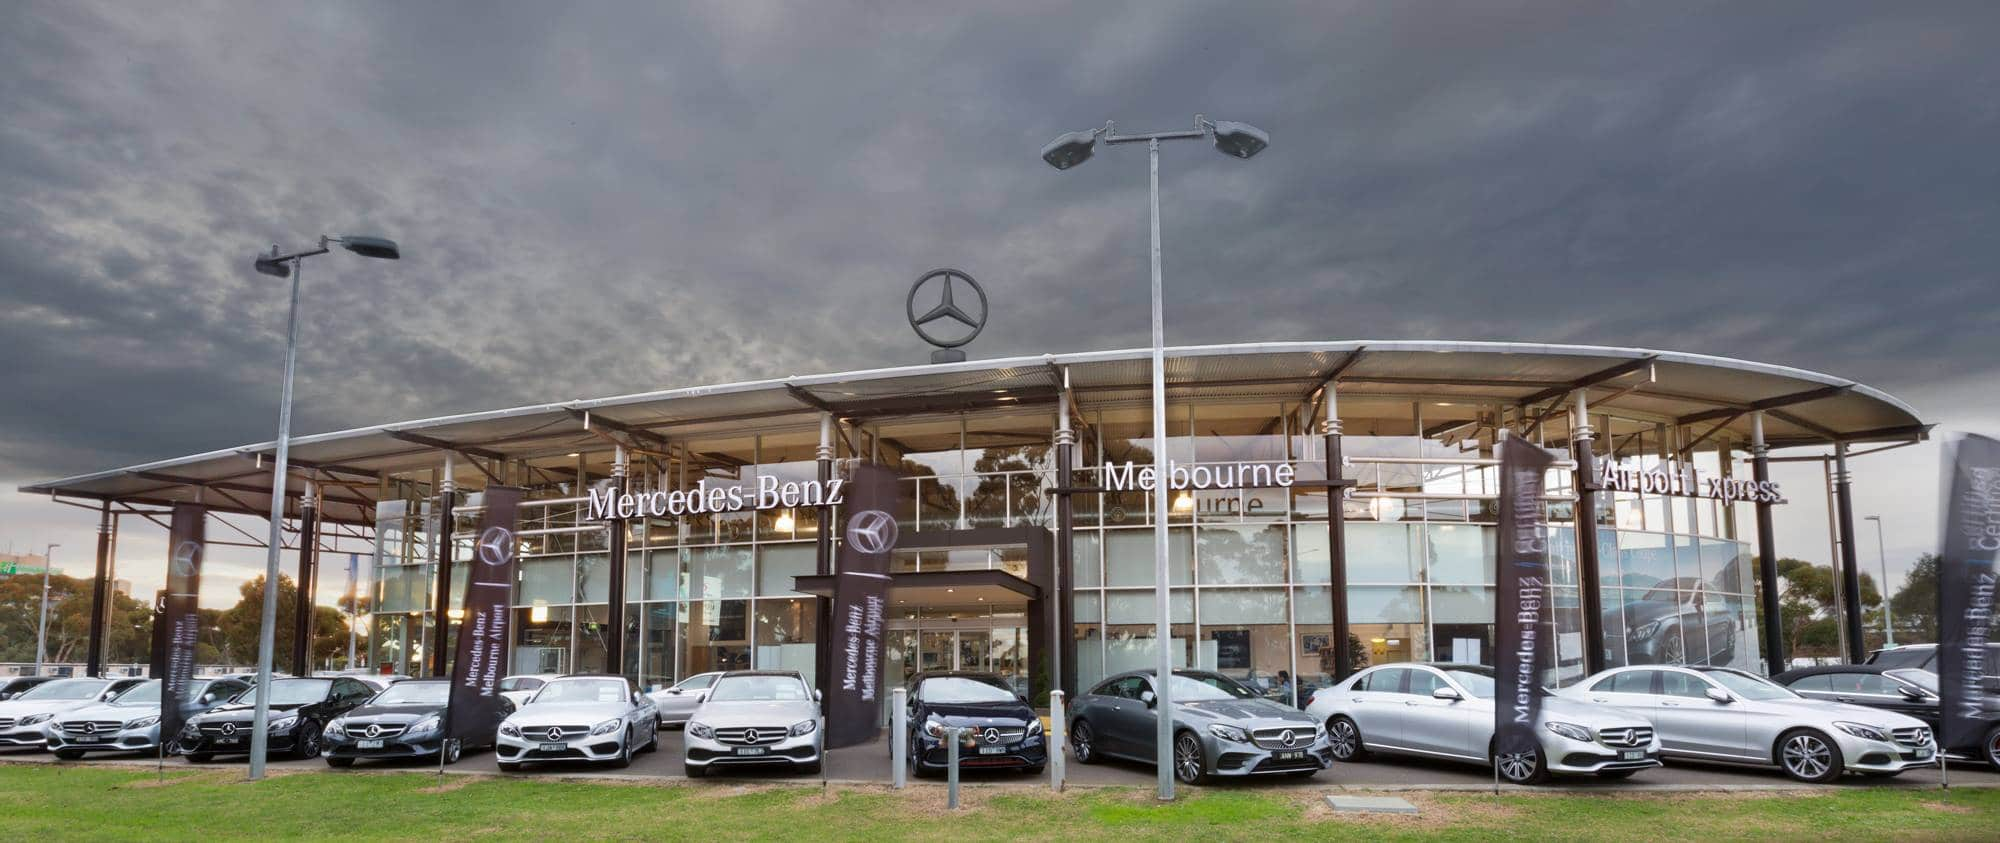 Mercades Benz Melbourne Airport | Christmas Sale | Car Dealership | Car Christmas Event | Car Dealerships Promotional Sales Event Large Bows